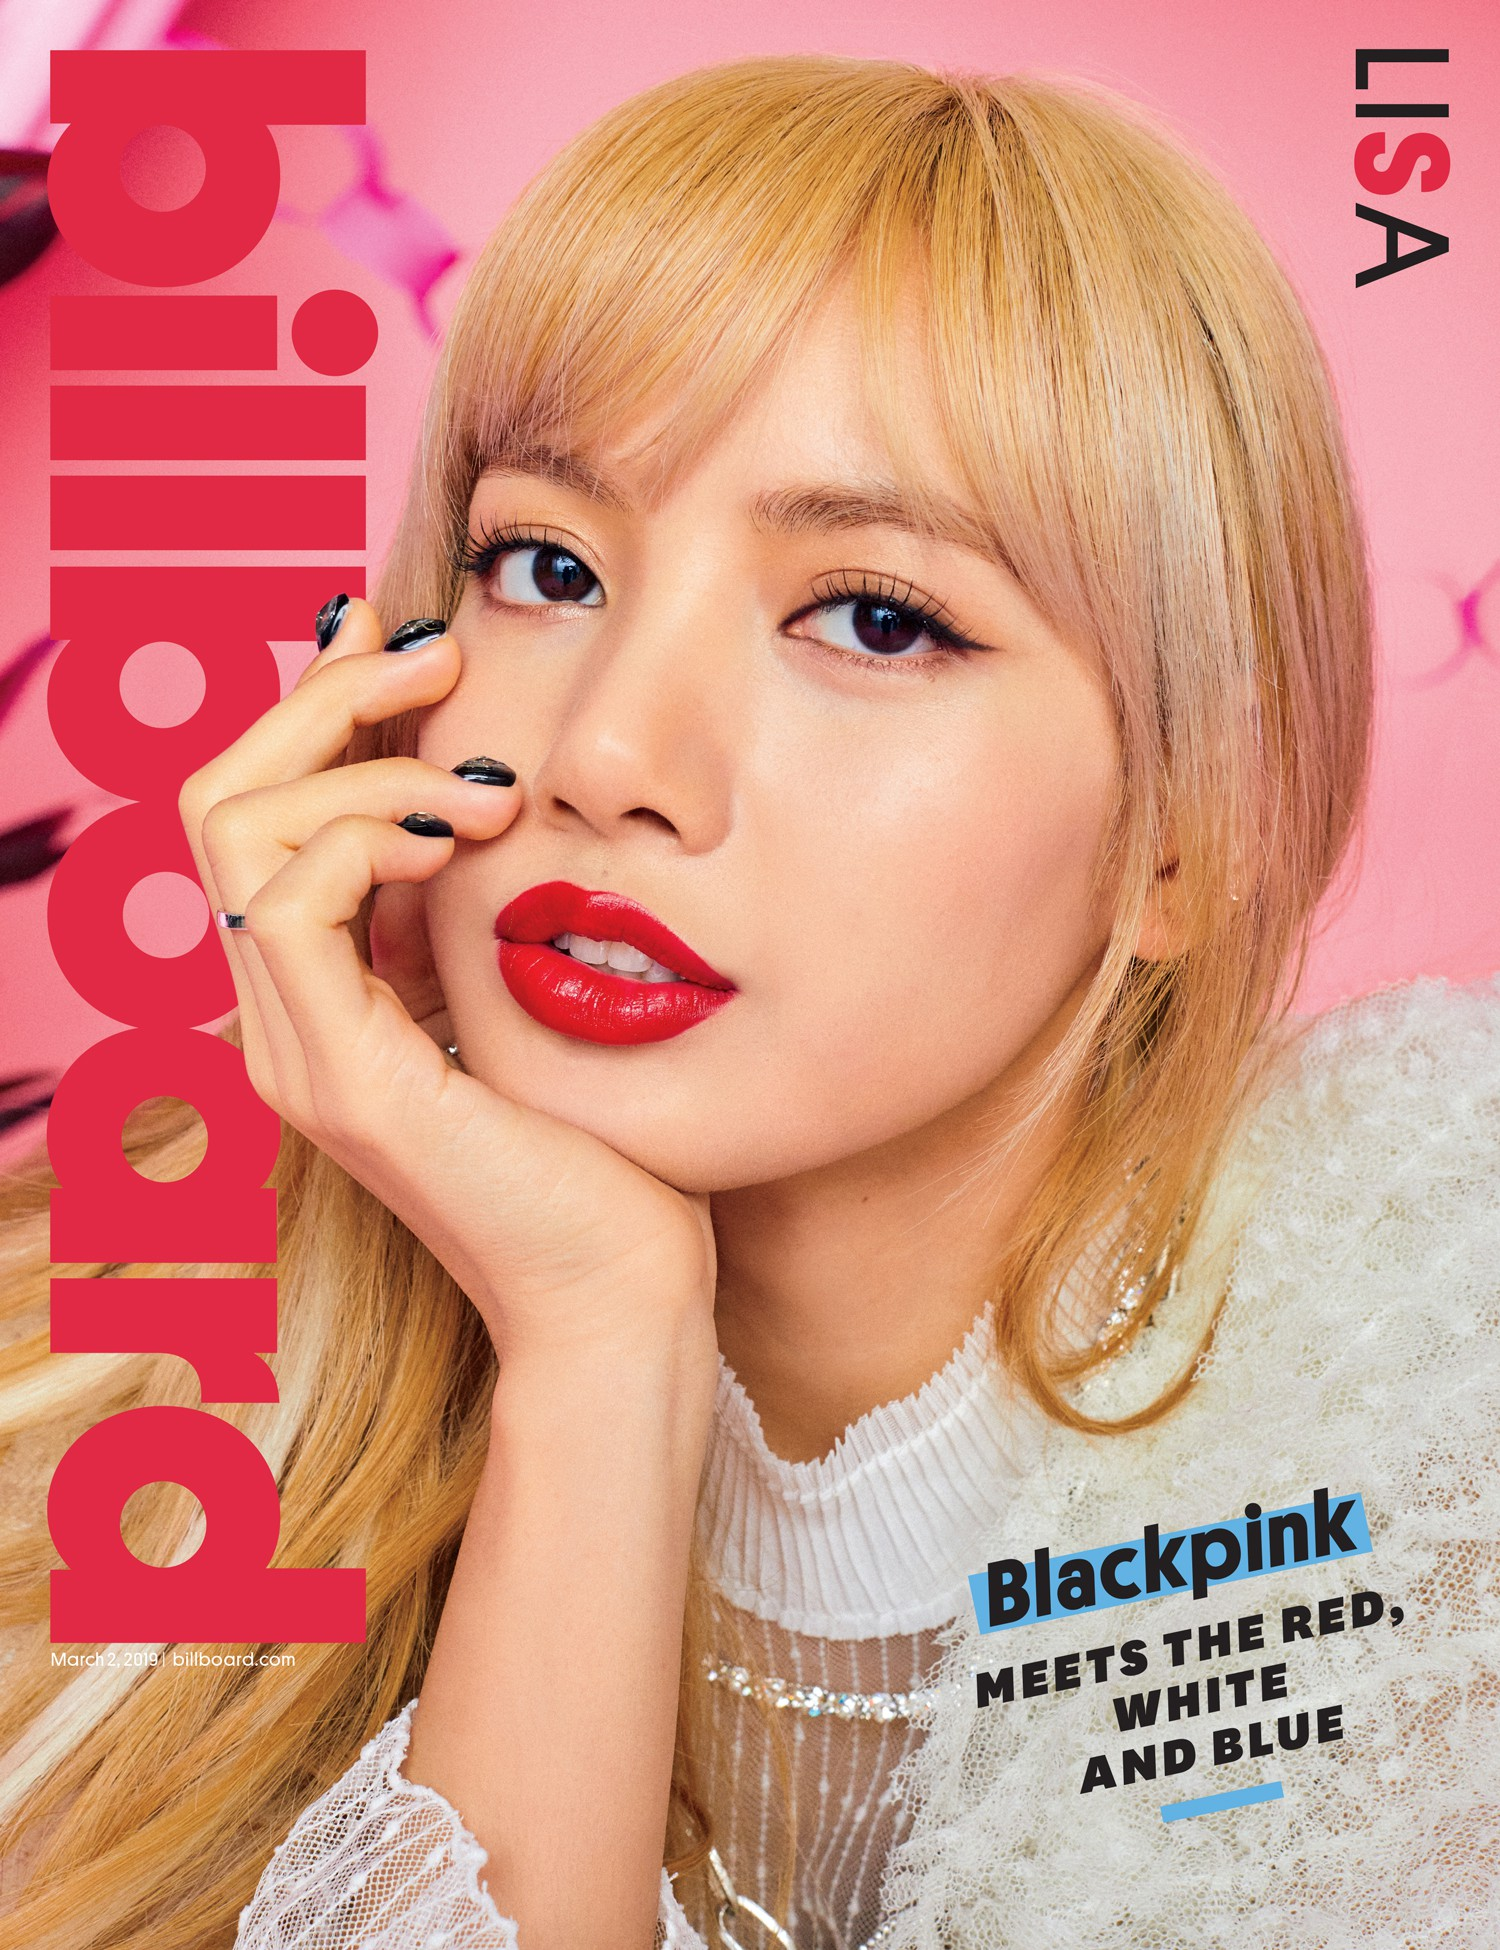 Black Pink was the first female Kpop girl to cover Billboard magazine's cover: beauty and charisma peak here! - Photo 6.